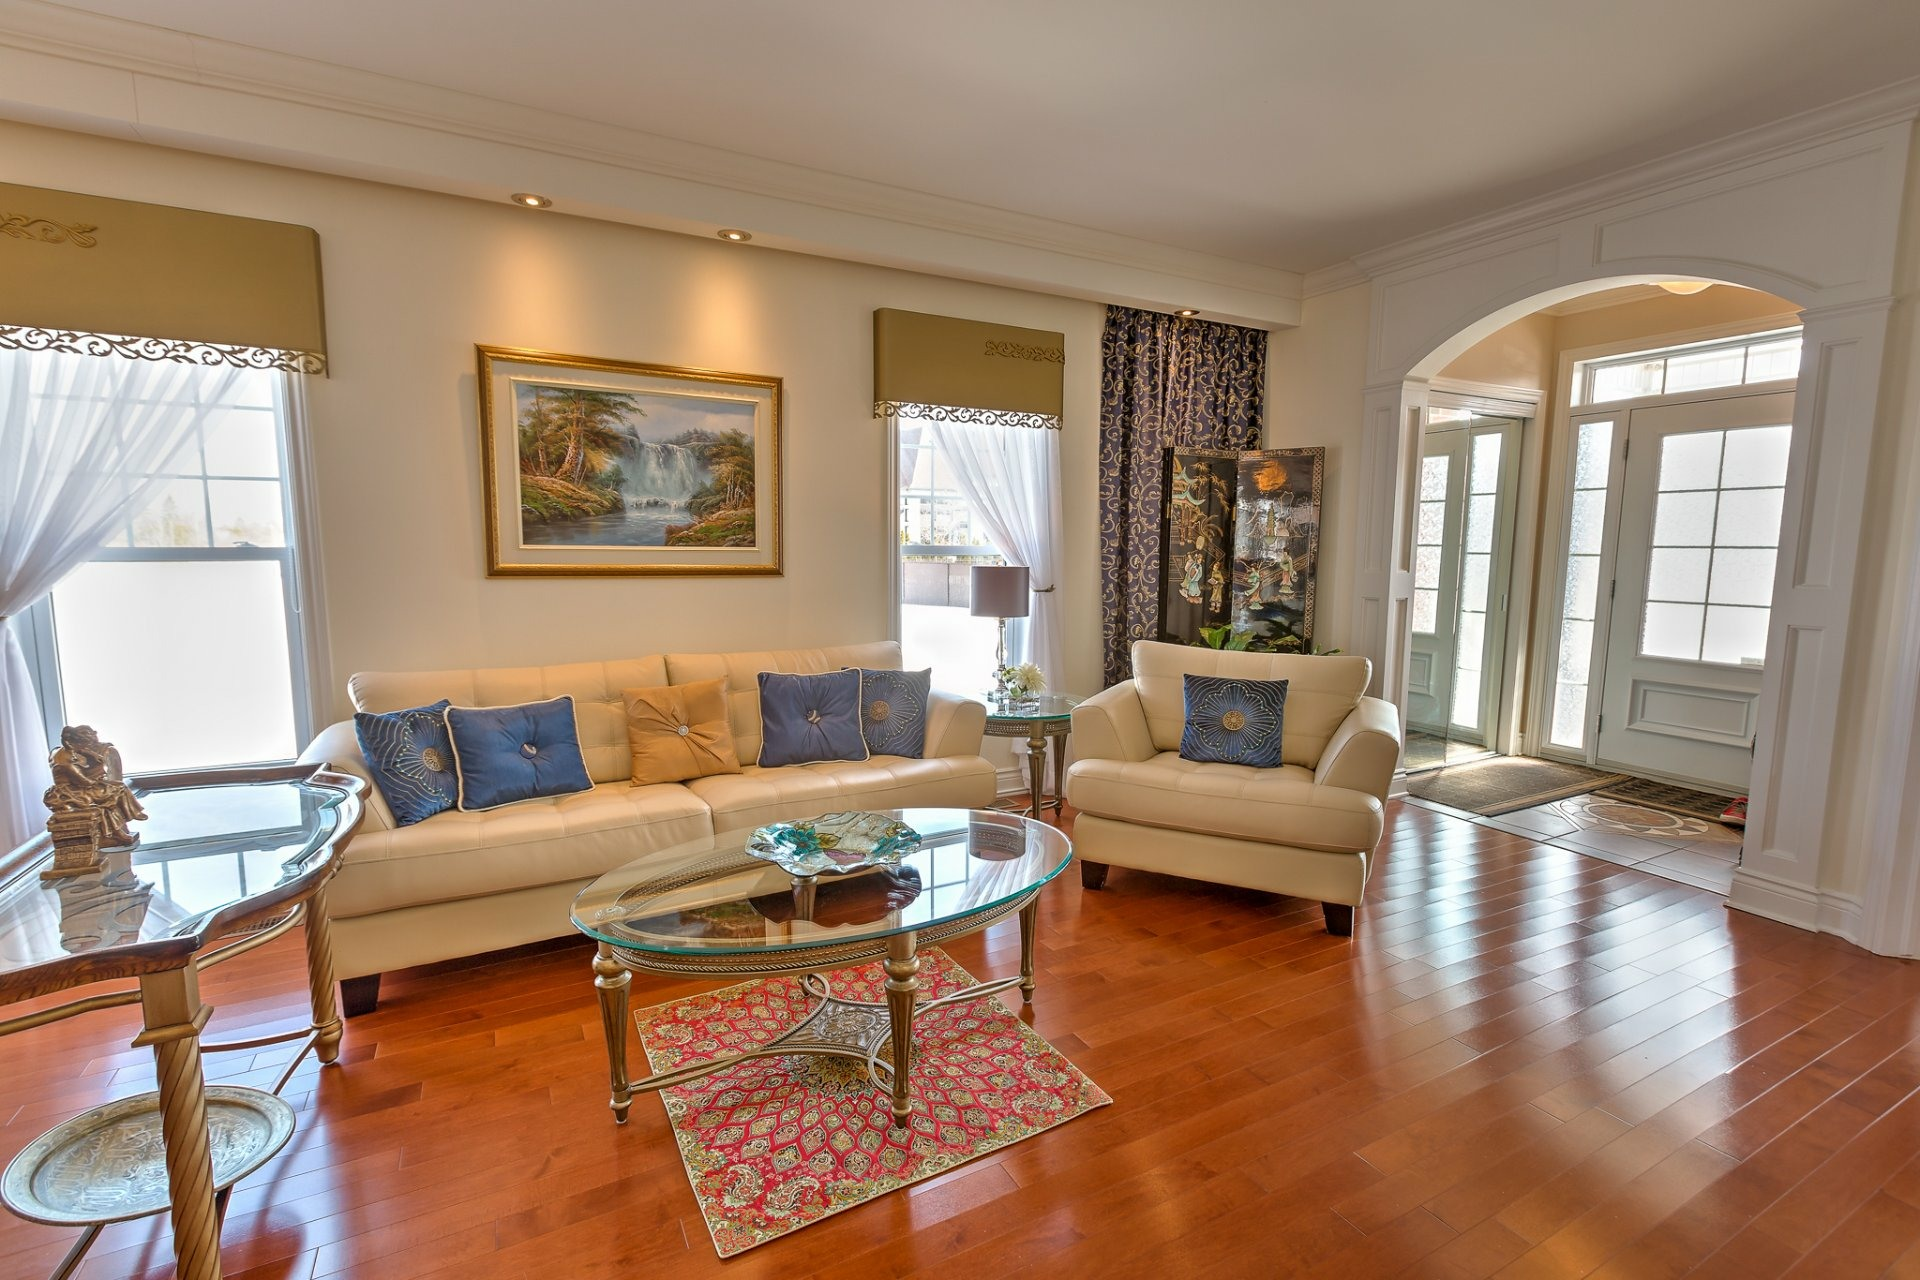 image 2 - Apartment For sale Brossard - 7 rooms